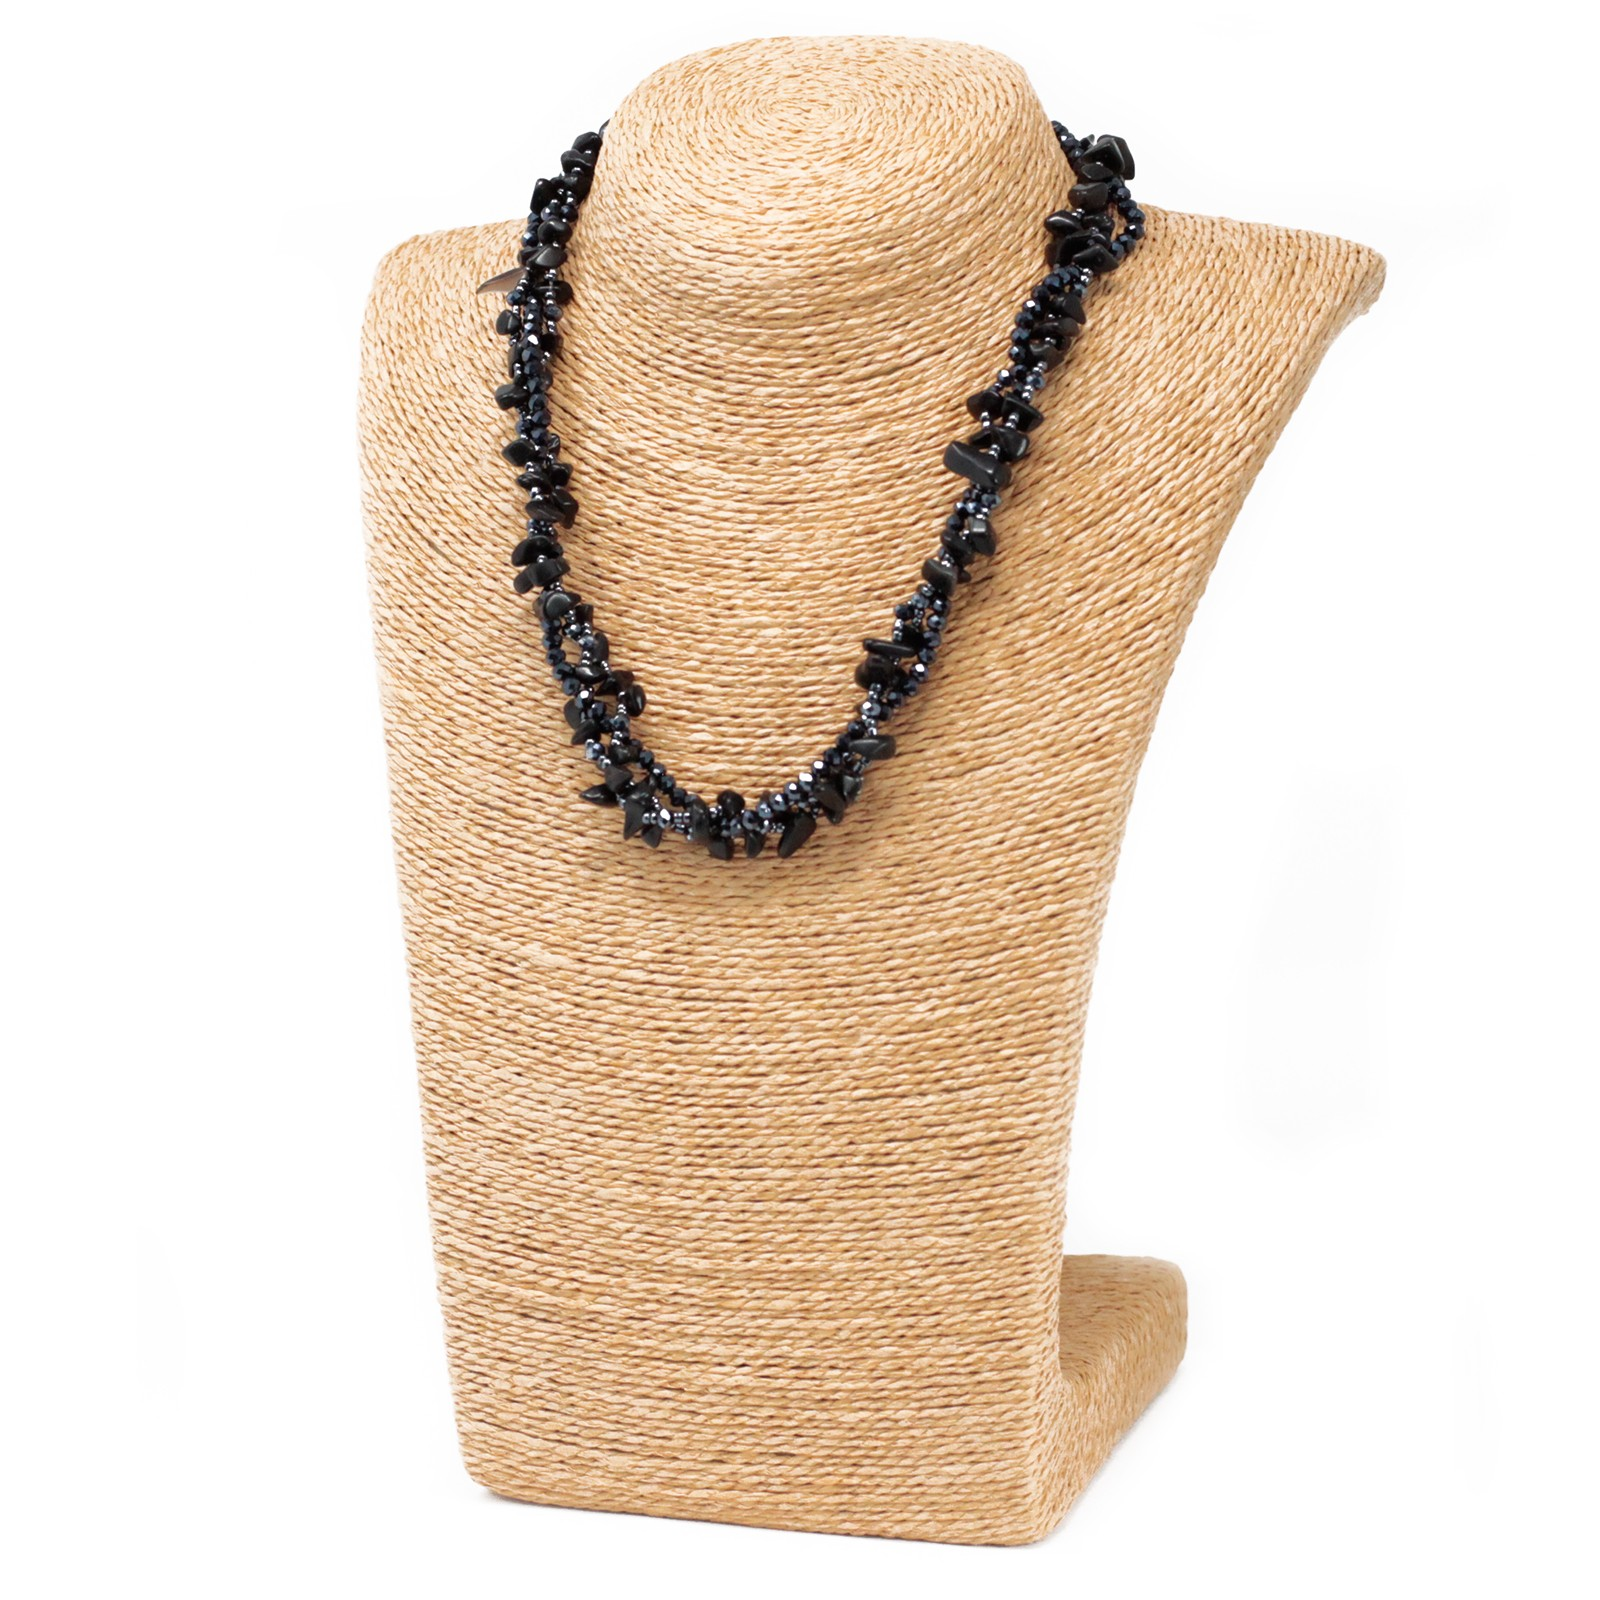 Chipstone & Bead Necklace -Black Agate